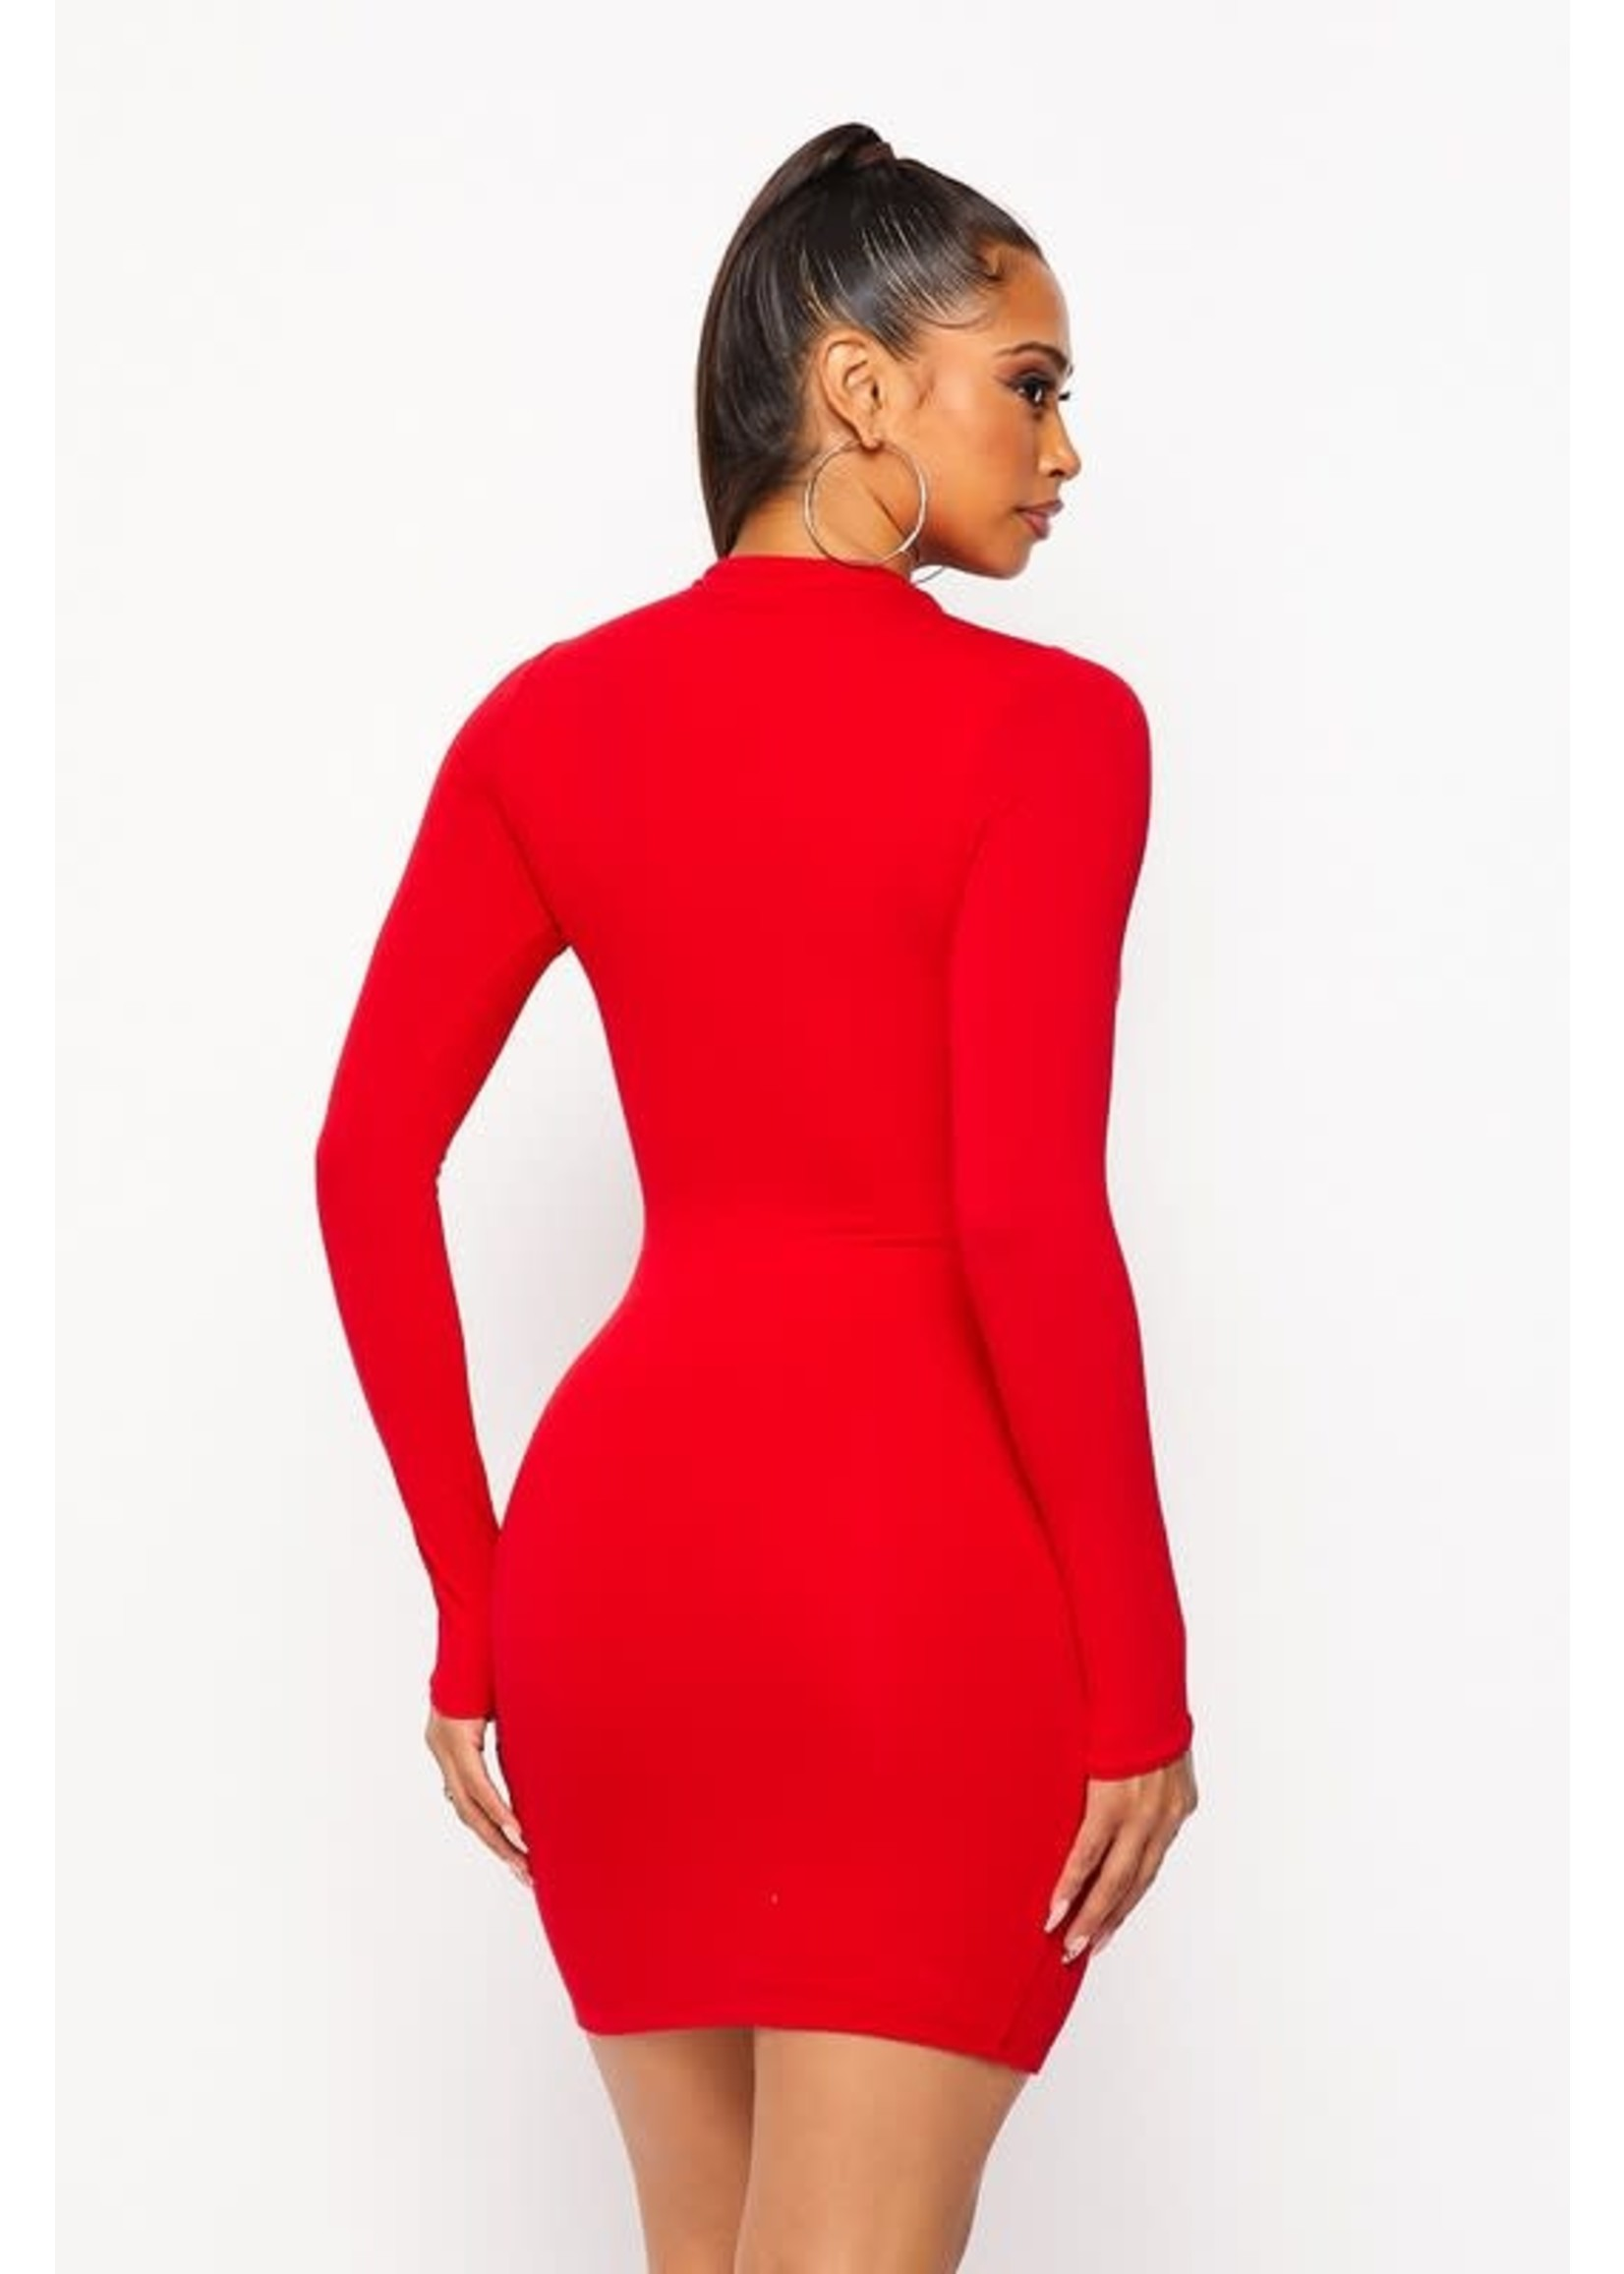 HOT + DELICIOUS All That And More Bodycon Dress - BD20300